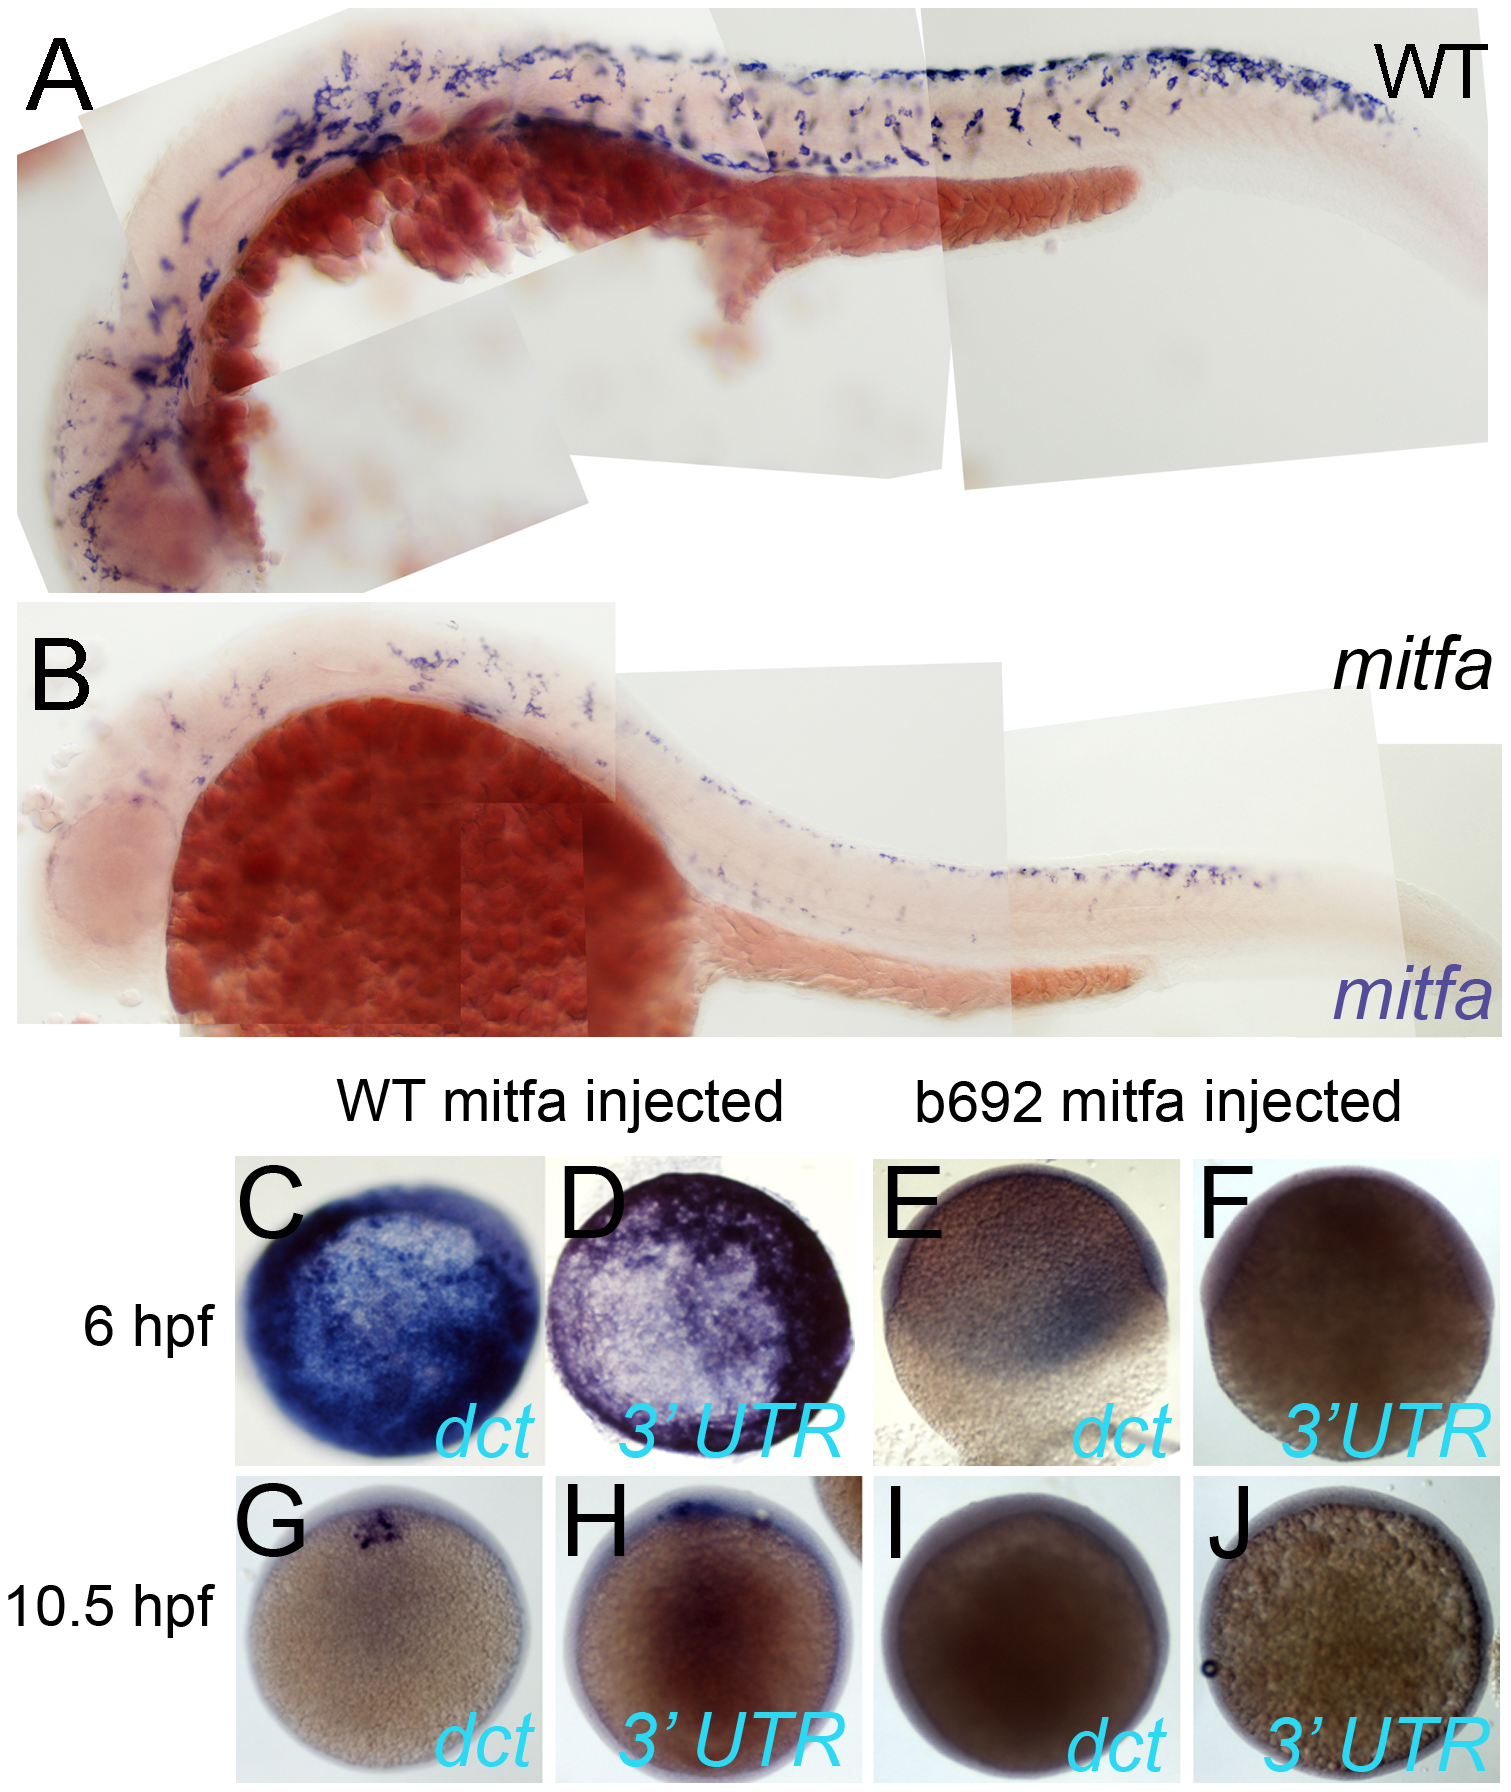 Mitfa-dependent maintenance of <i>mitfa</i> expression.